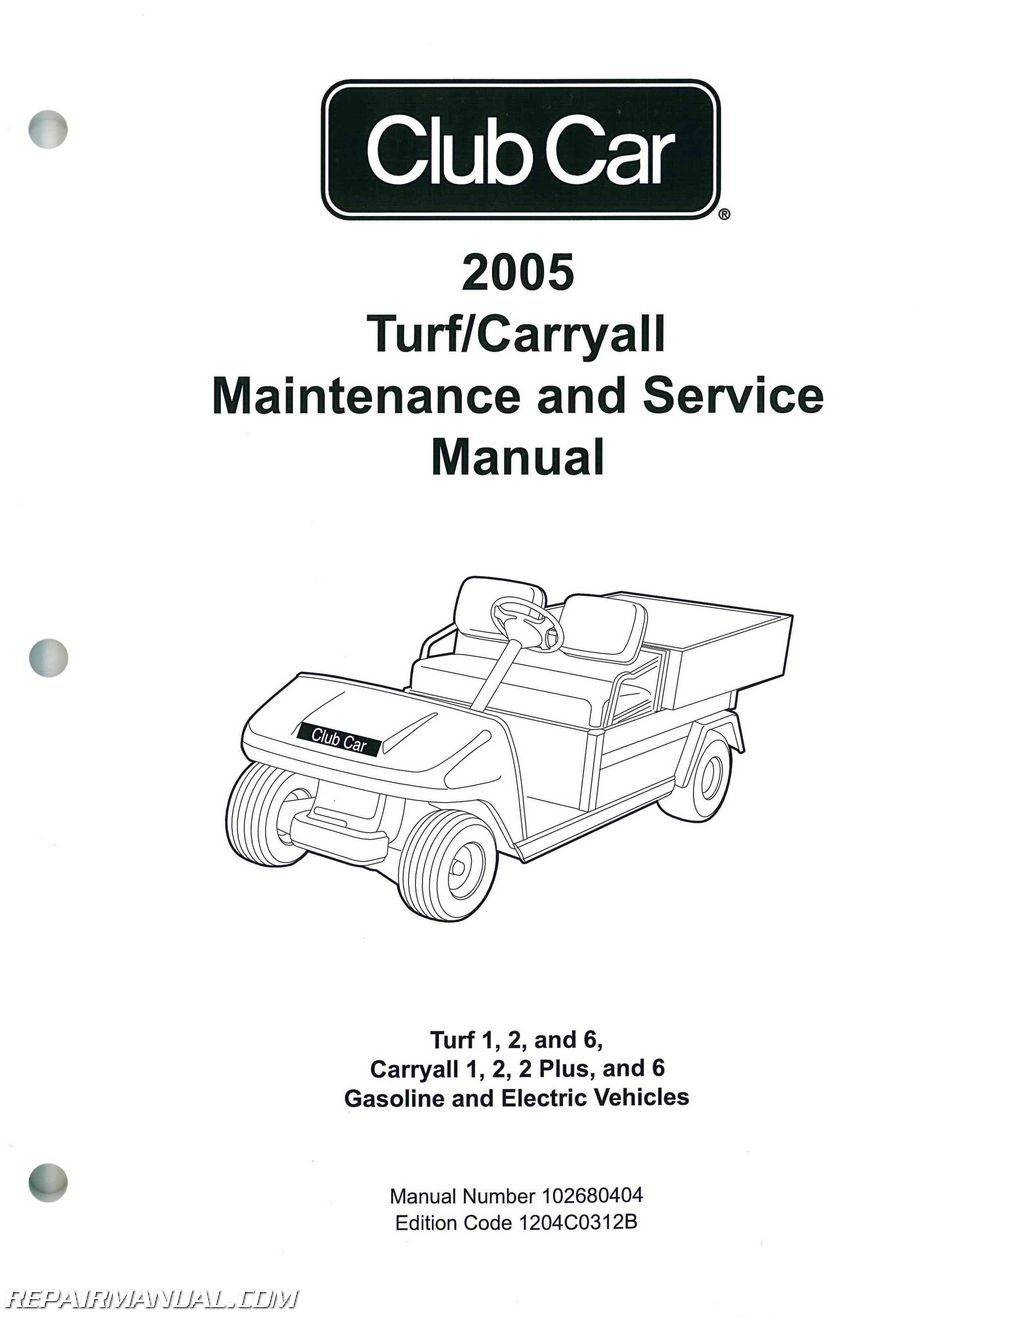 2005 Club Car Turf Carryall Turf 1, 2, and 6, Carryall 1, 2, 2 Plus, and 6  Gas and Electric Golf Car Service Manual